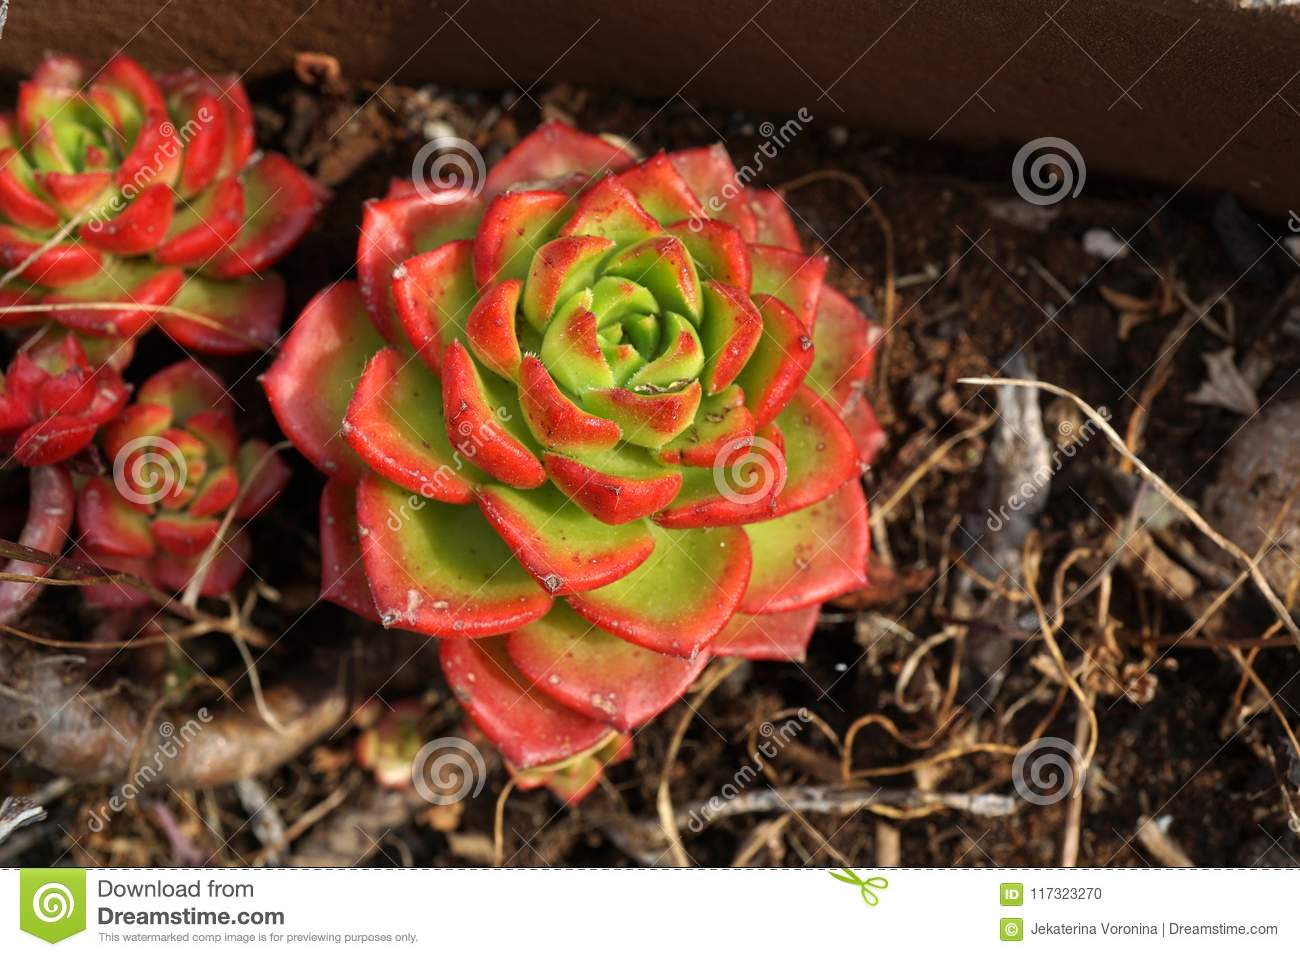 Succulent plant with green and red leaves